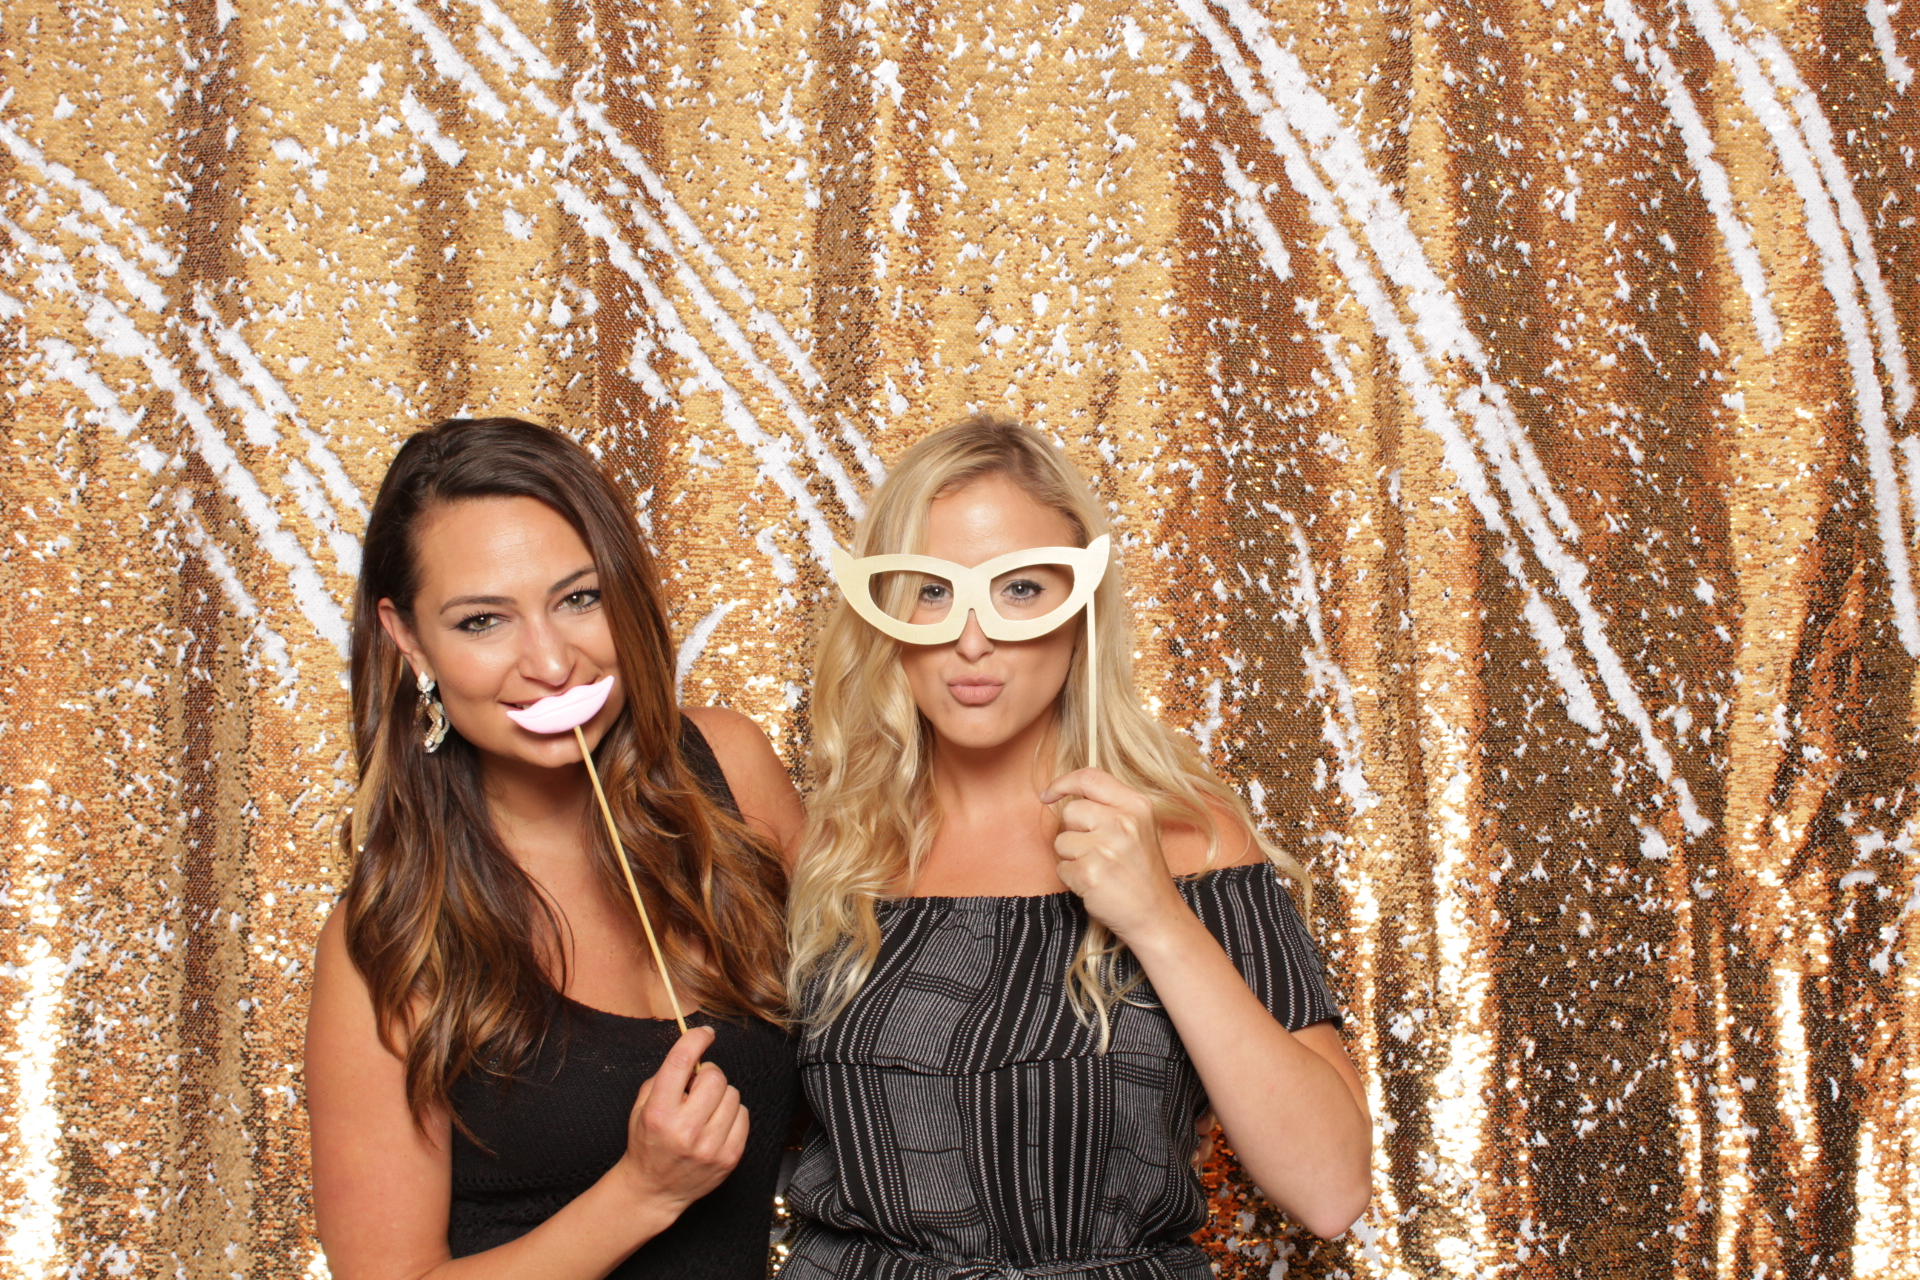 photo booth rentals near me